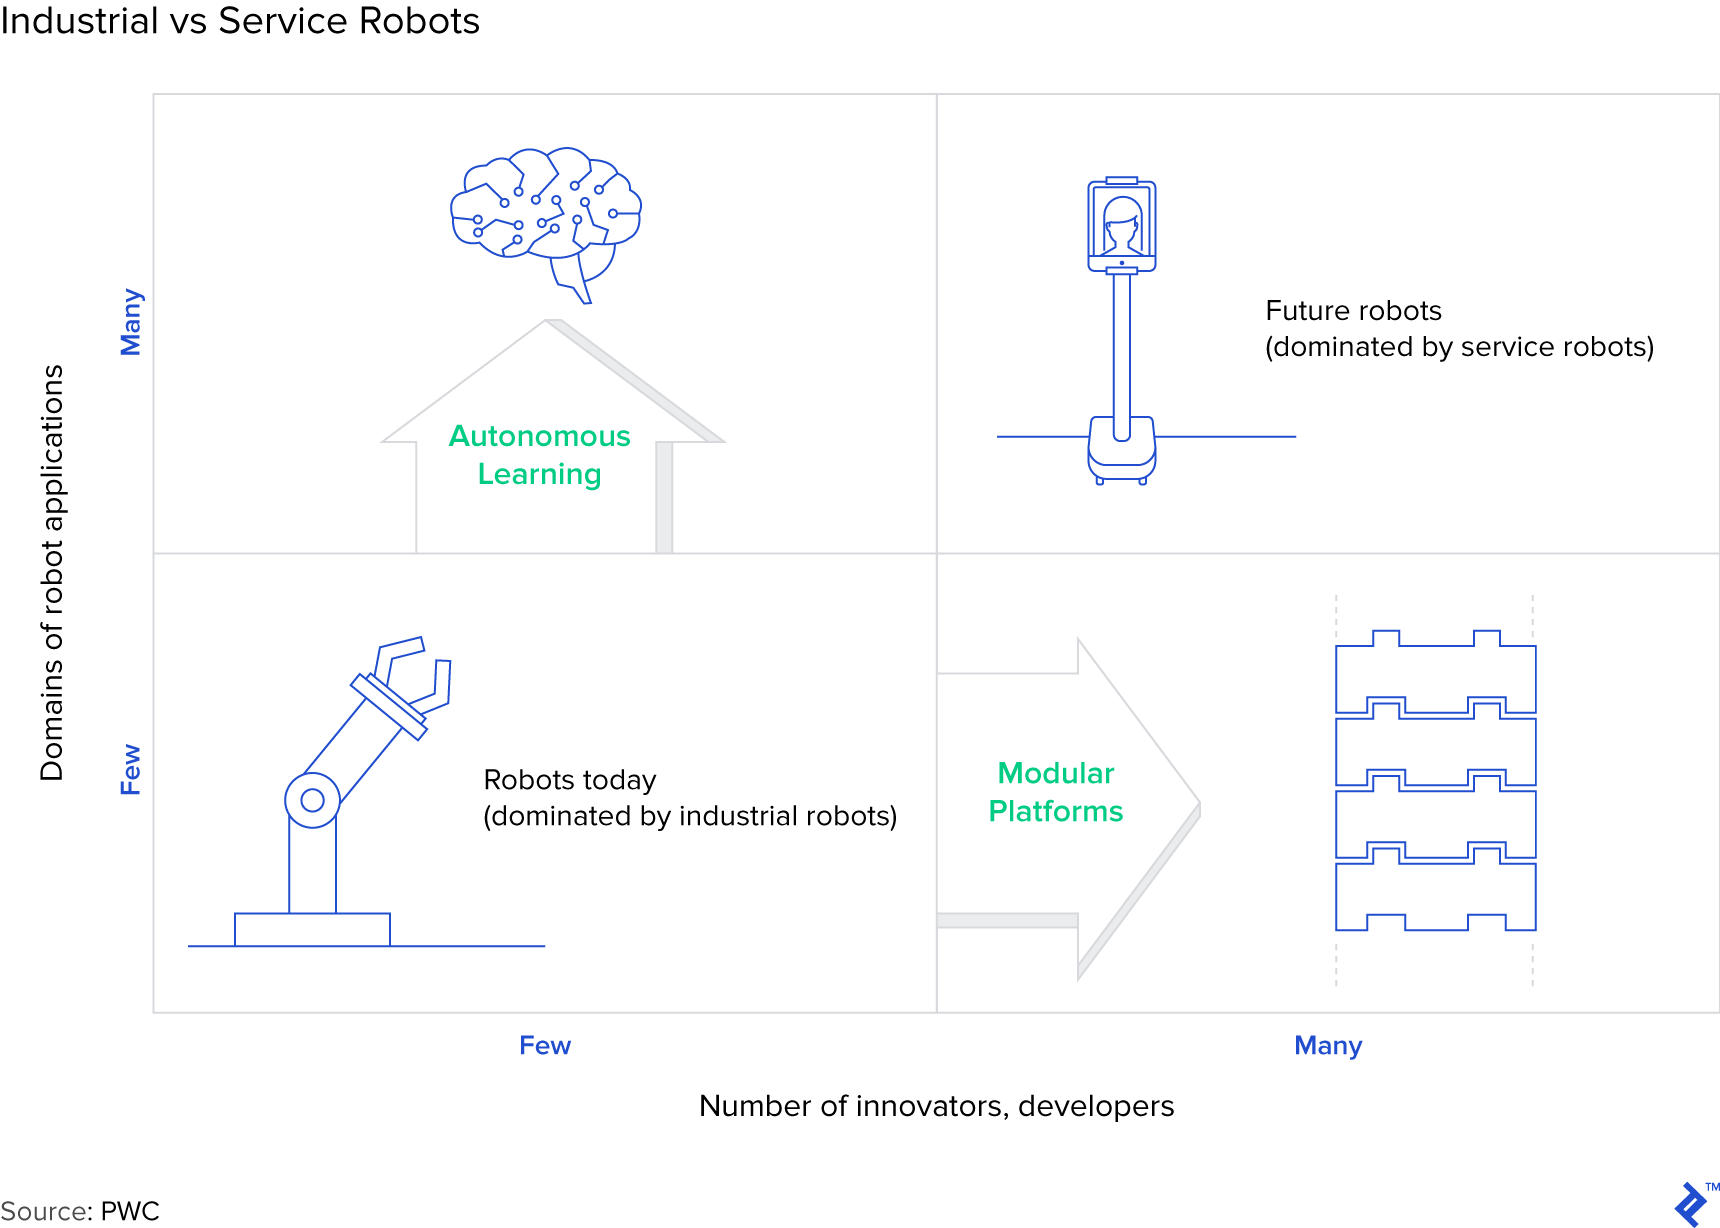 Graph: Industrial vs Service Robots